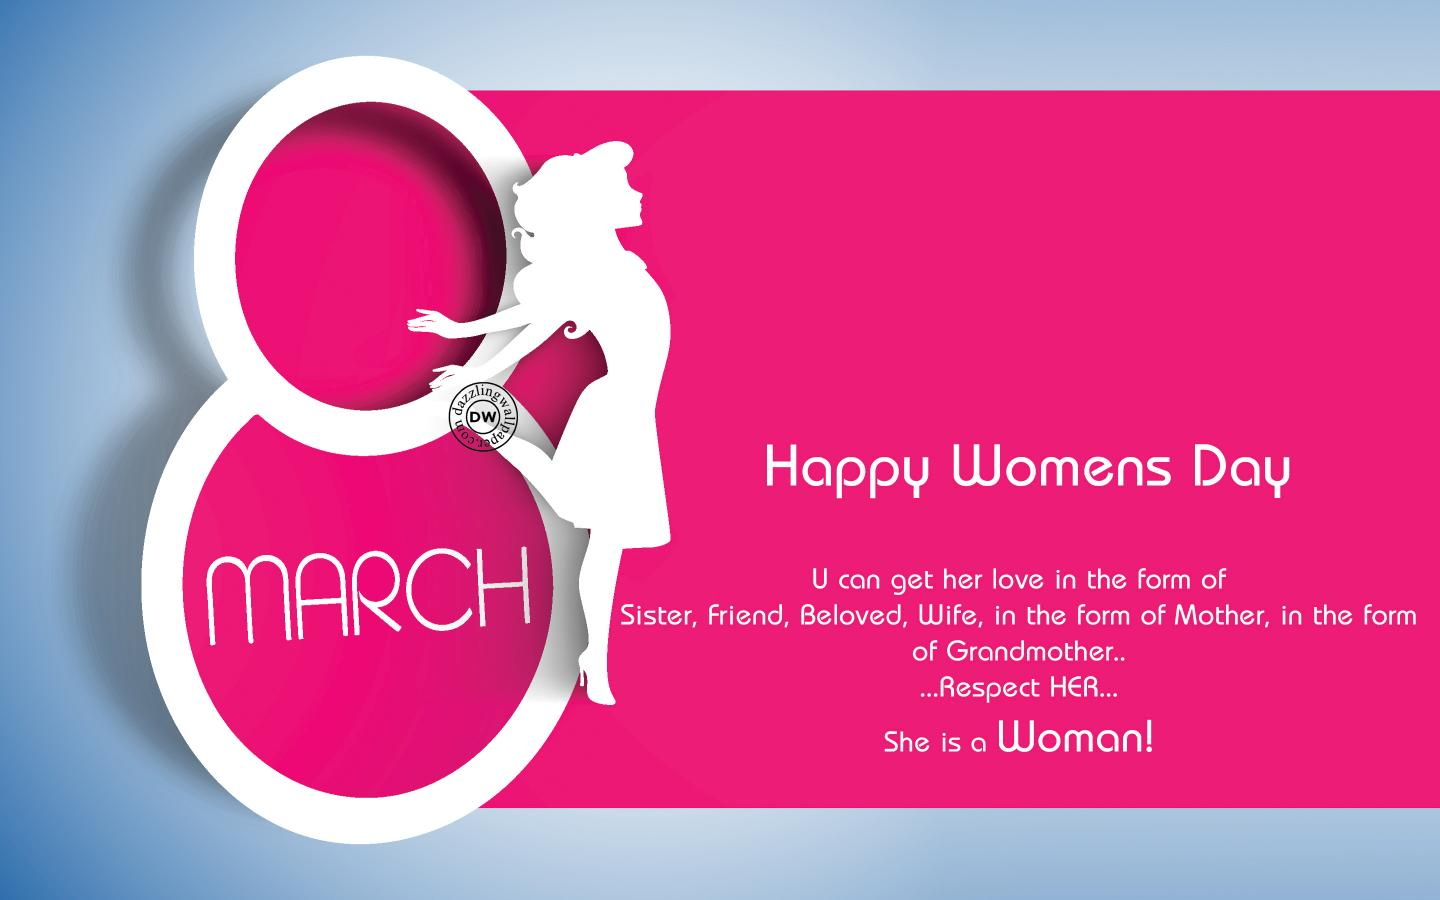 International Womans Day Wallpaper 2   2880 X 1800 stmednet 1440x900